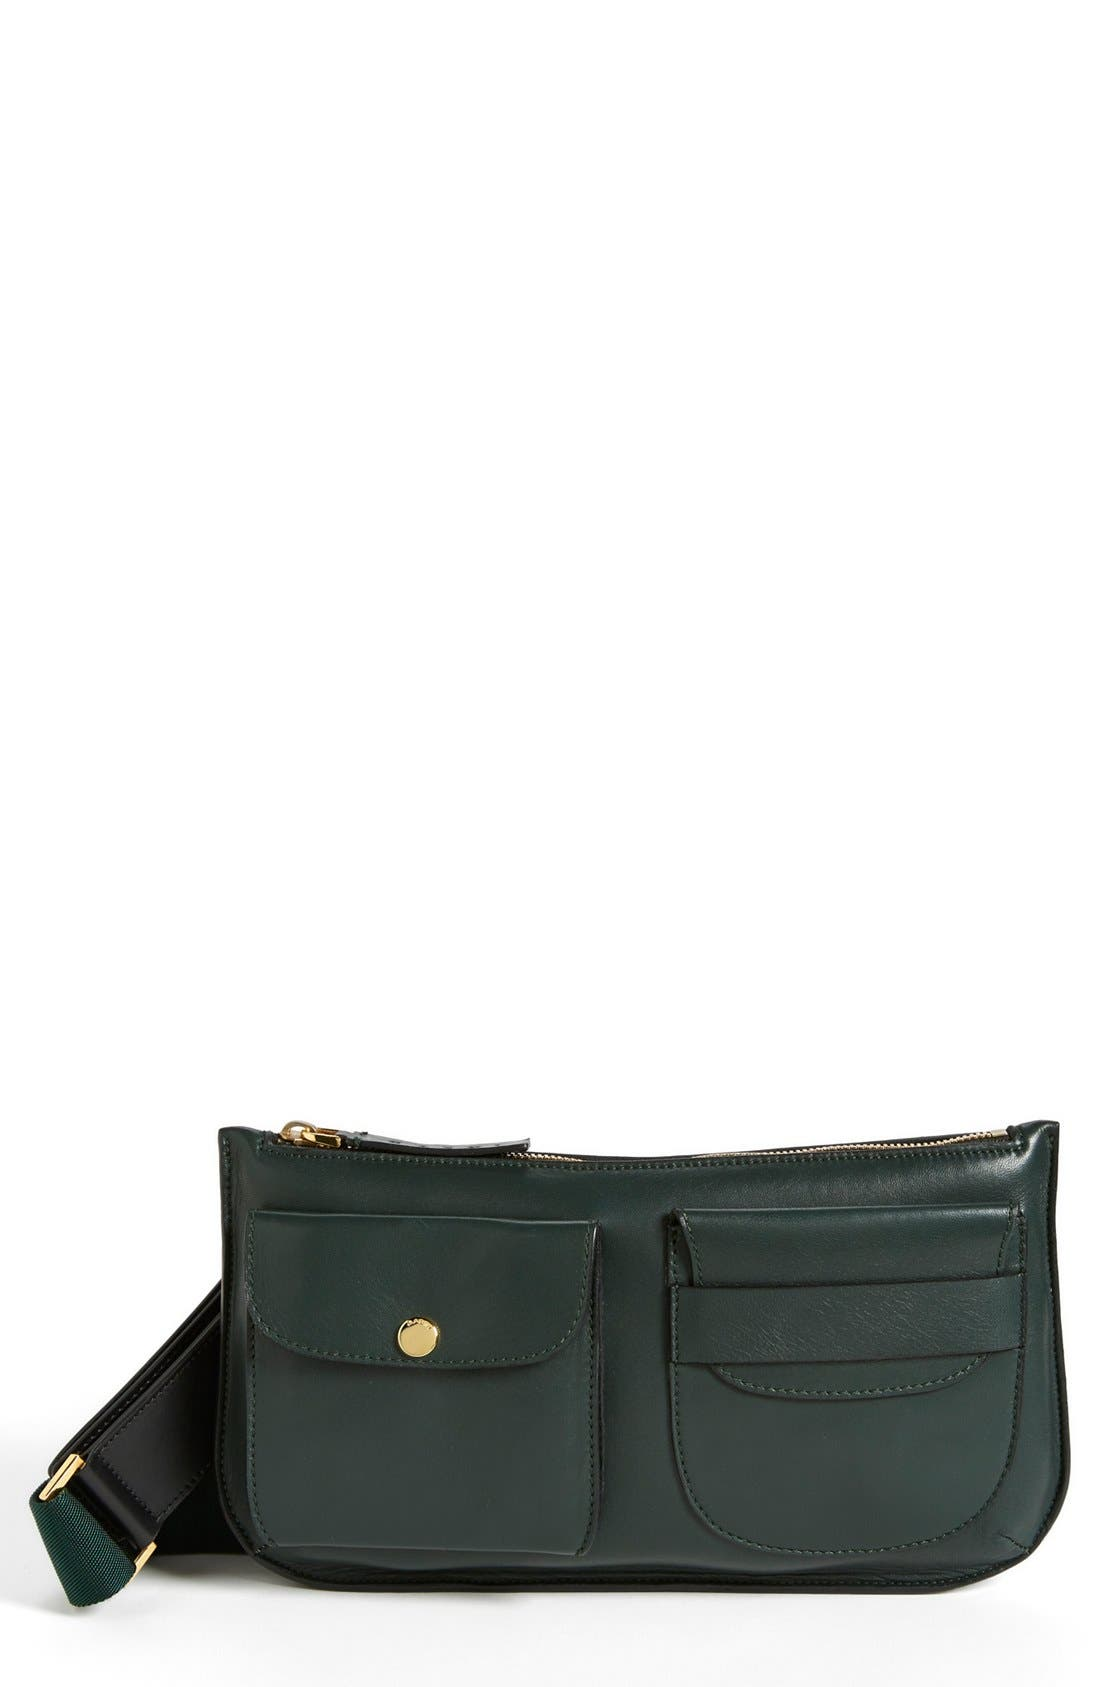 Alternate Image 1 Selected - Marni Leather Belt Bag